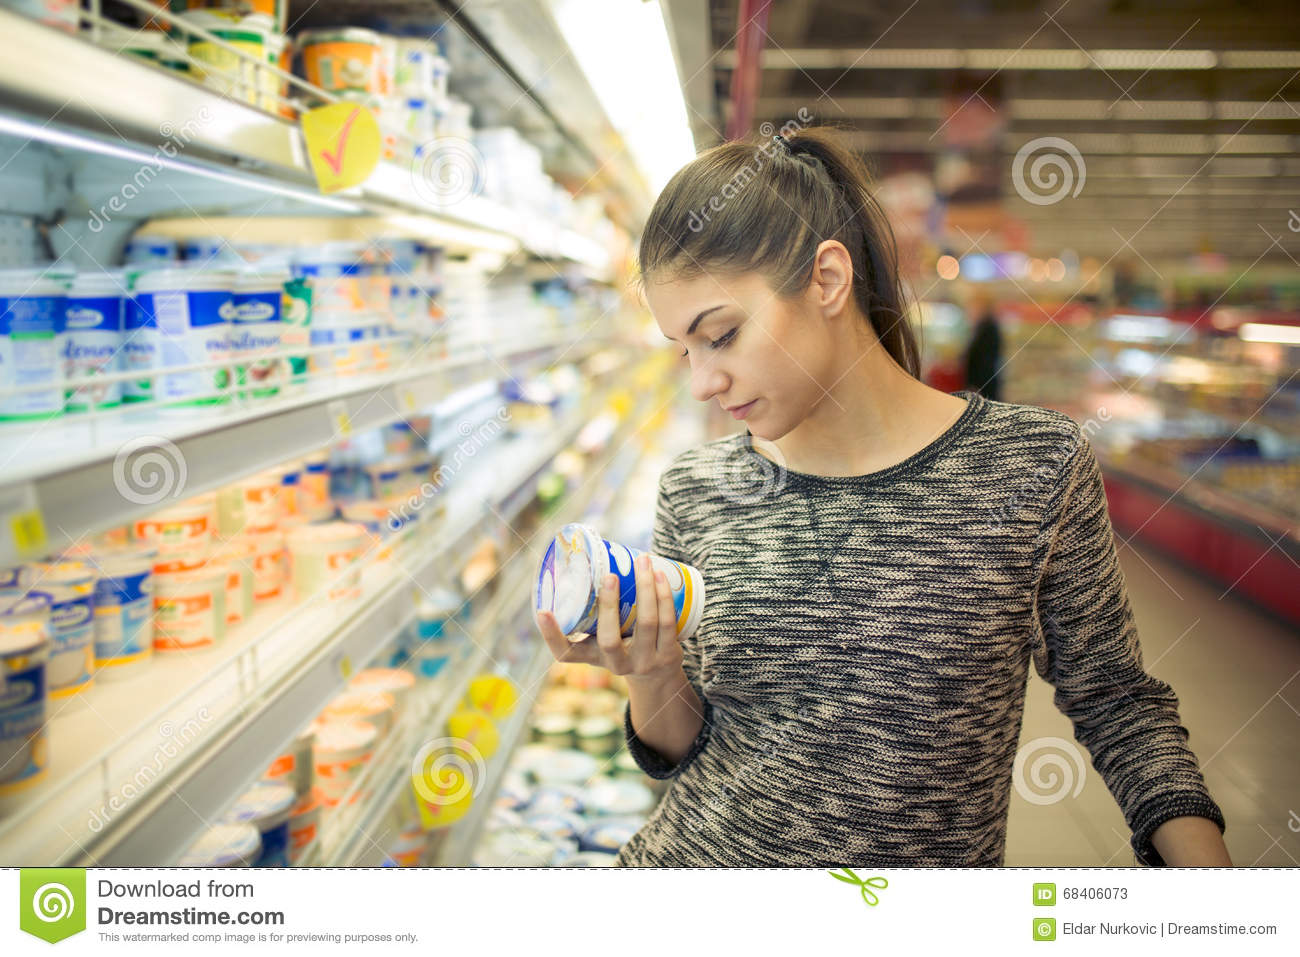 Young woman reading ingredients,declaration or expiration date on a diary product before buying it.Curious woman reading nutrition